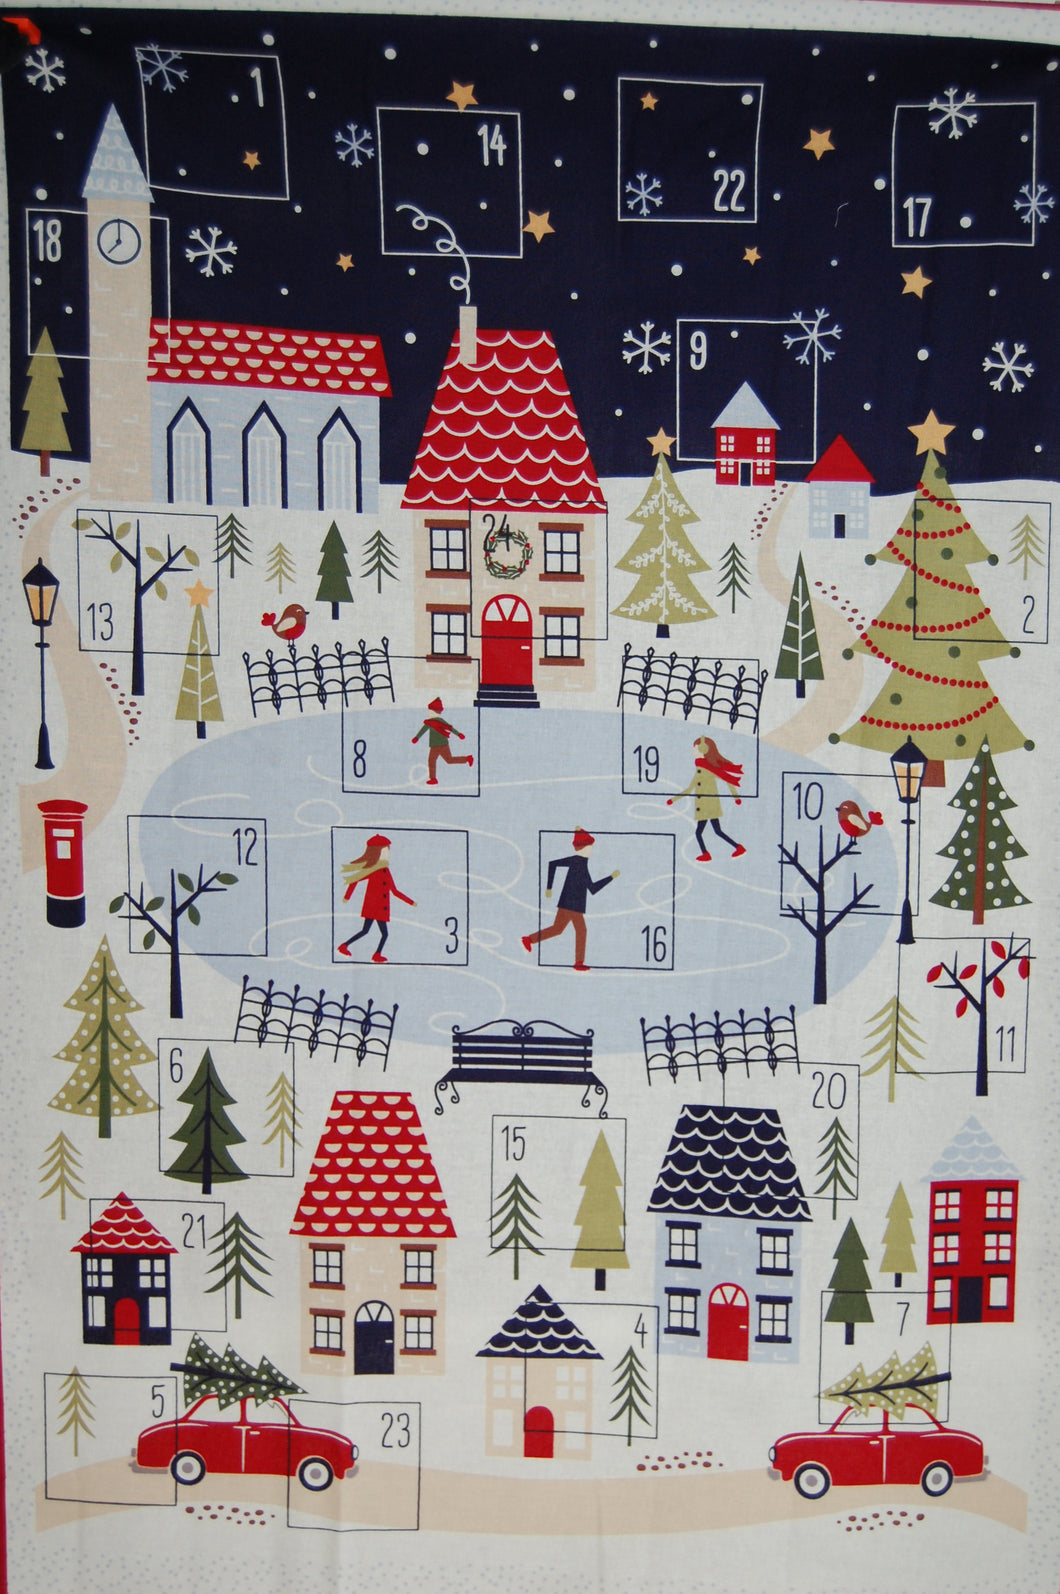 fabric shack sewing quilting sew fat quarter cotton quilt patchwork dressmaking craft cotton co company ski christmas holidays xmas village advent calendar panel